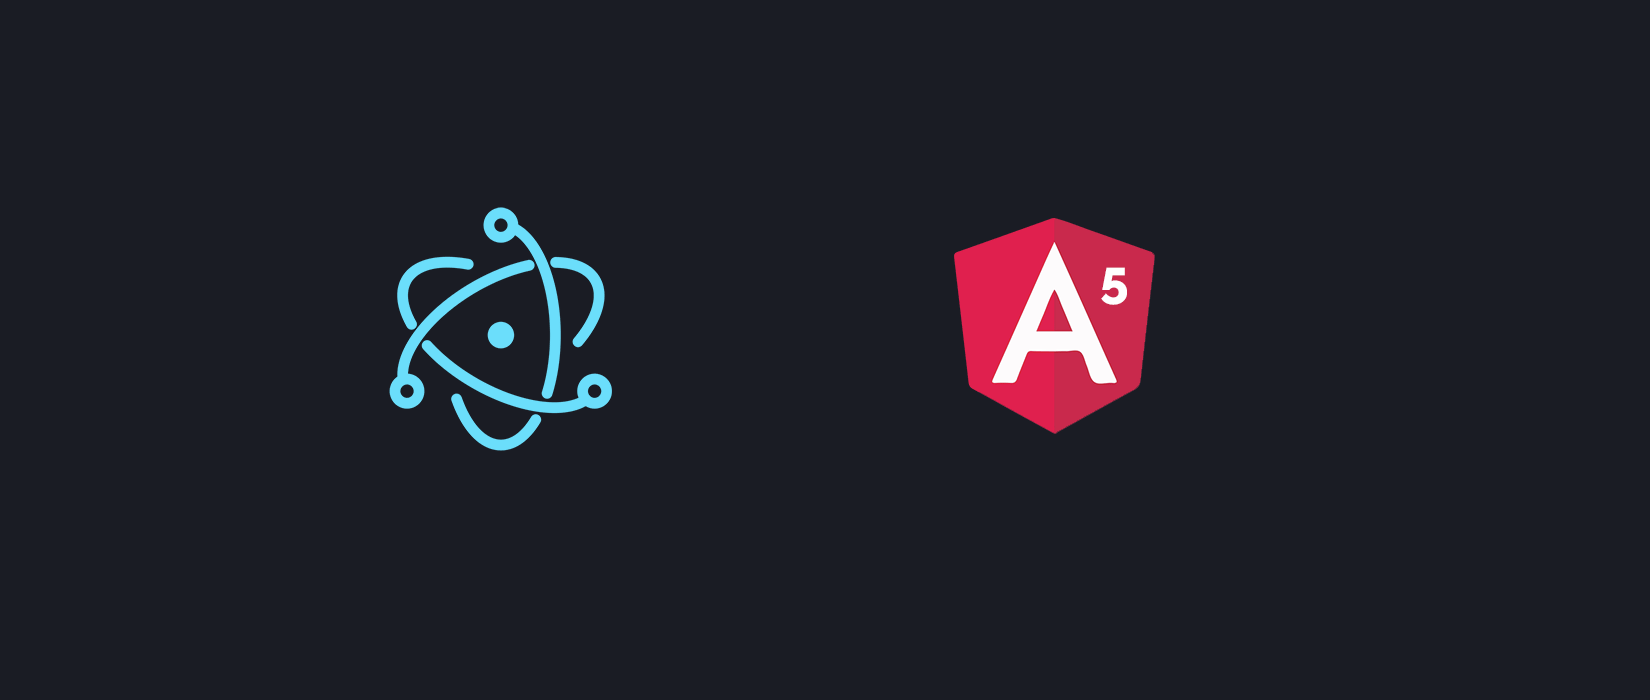 Angular 5 Electron Tutorial